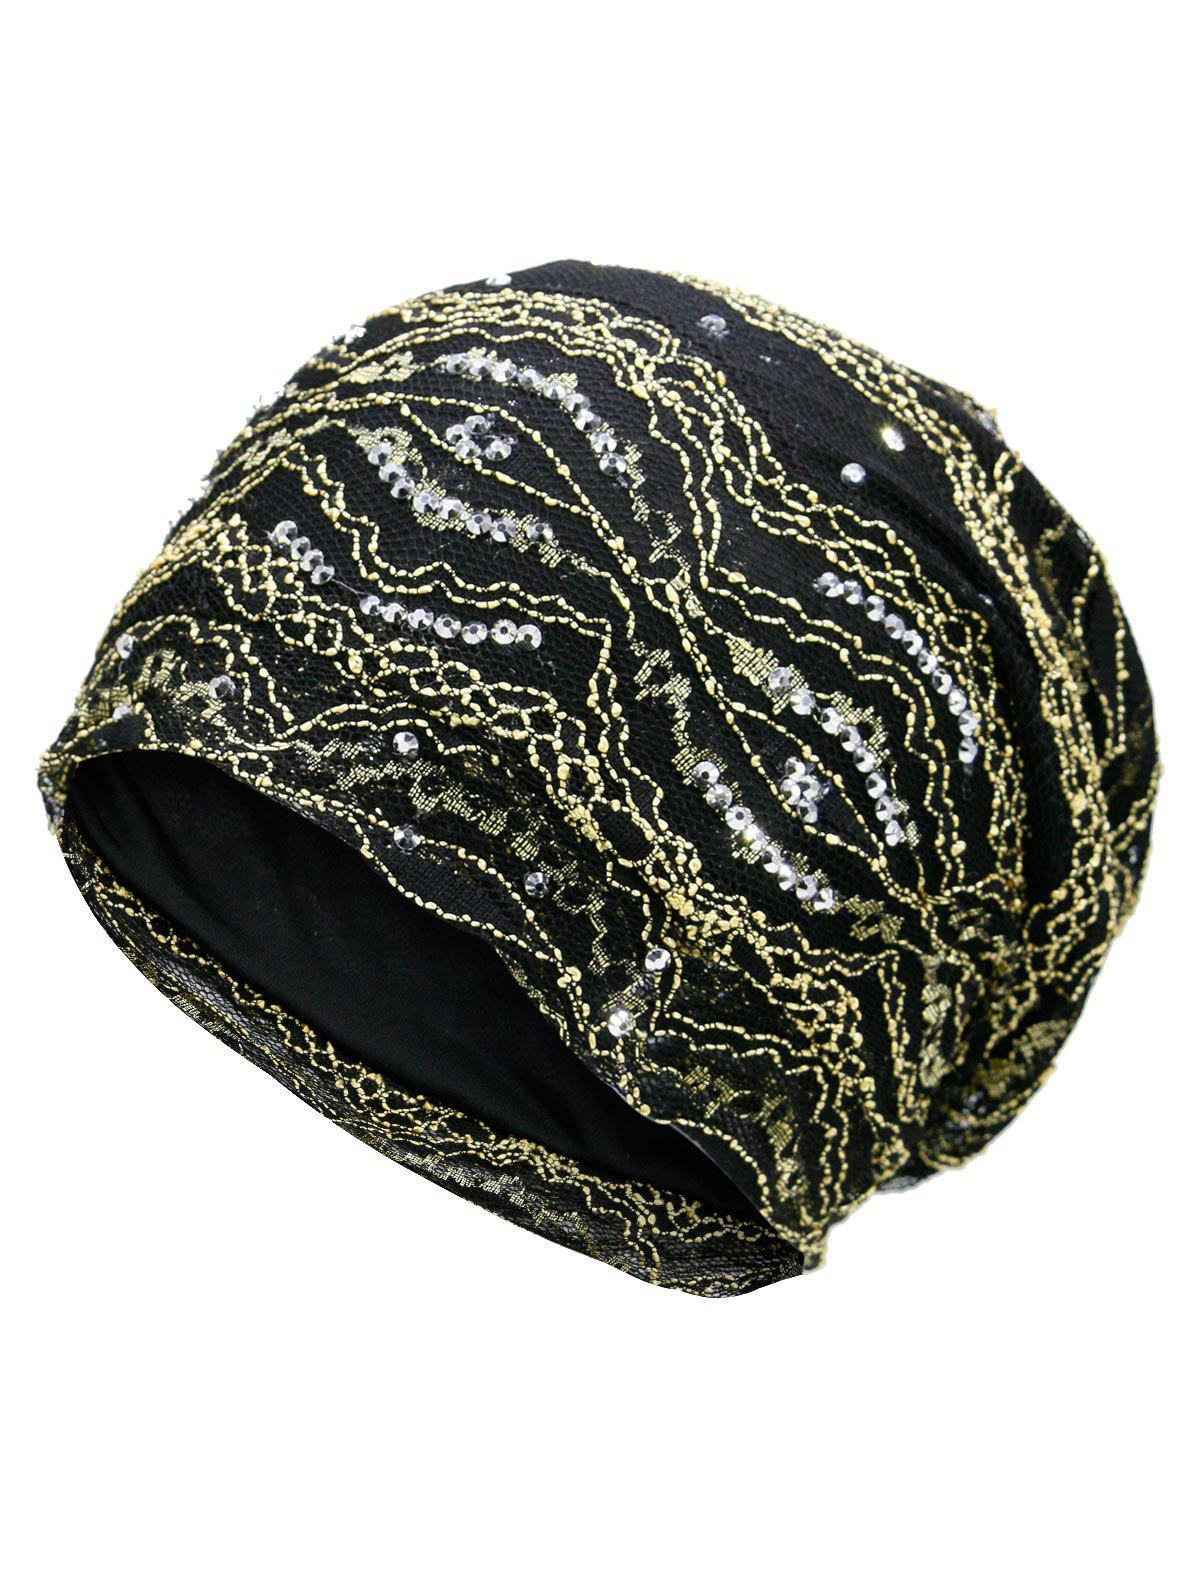 Outdoor Striped Pattern Sequin Embellished Beanie Hat - GOLDEN